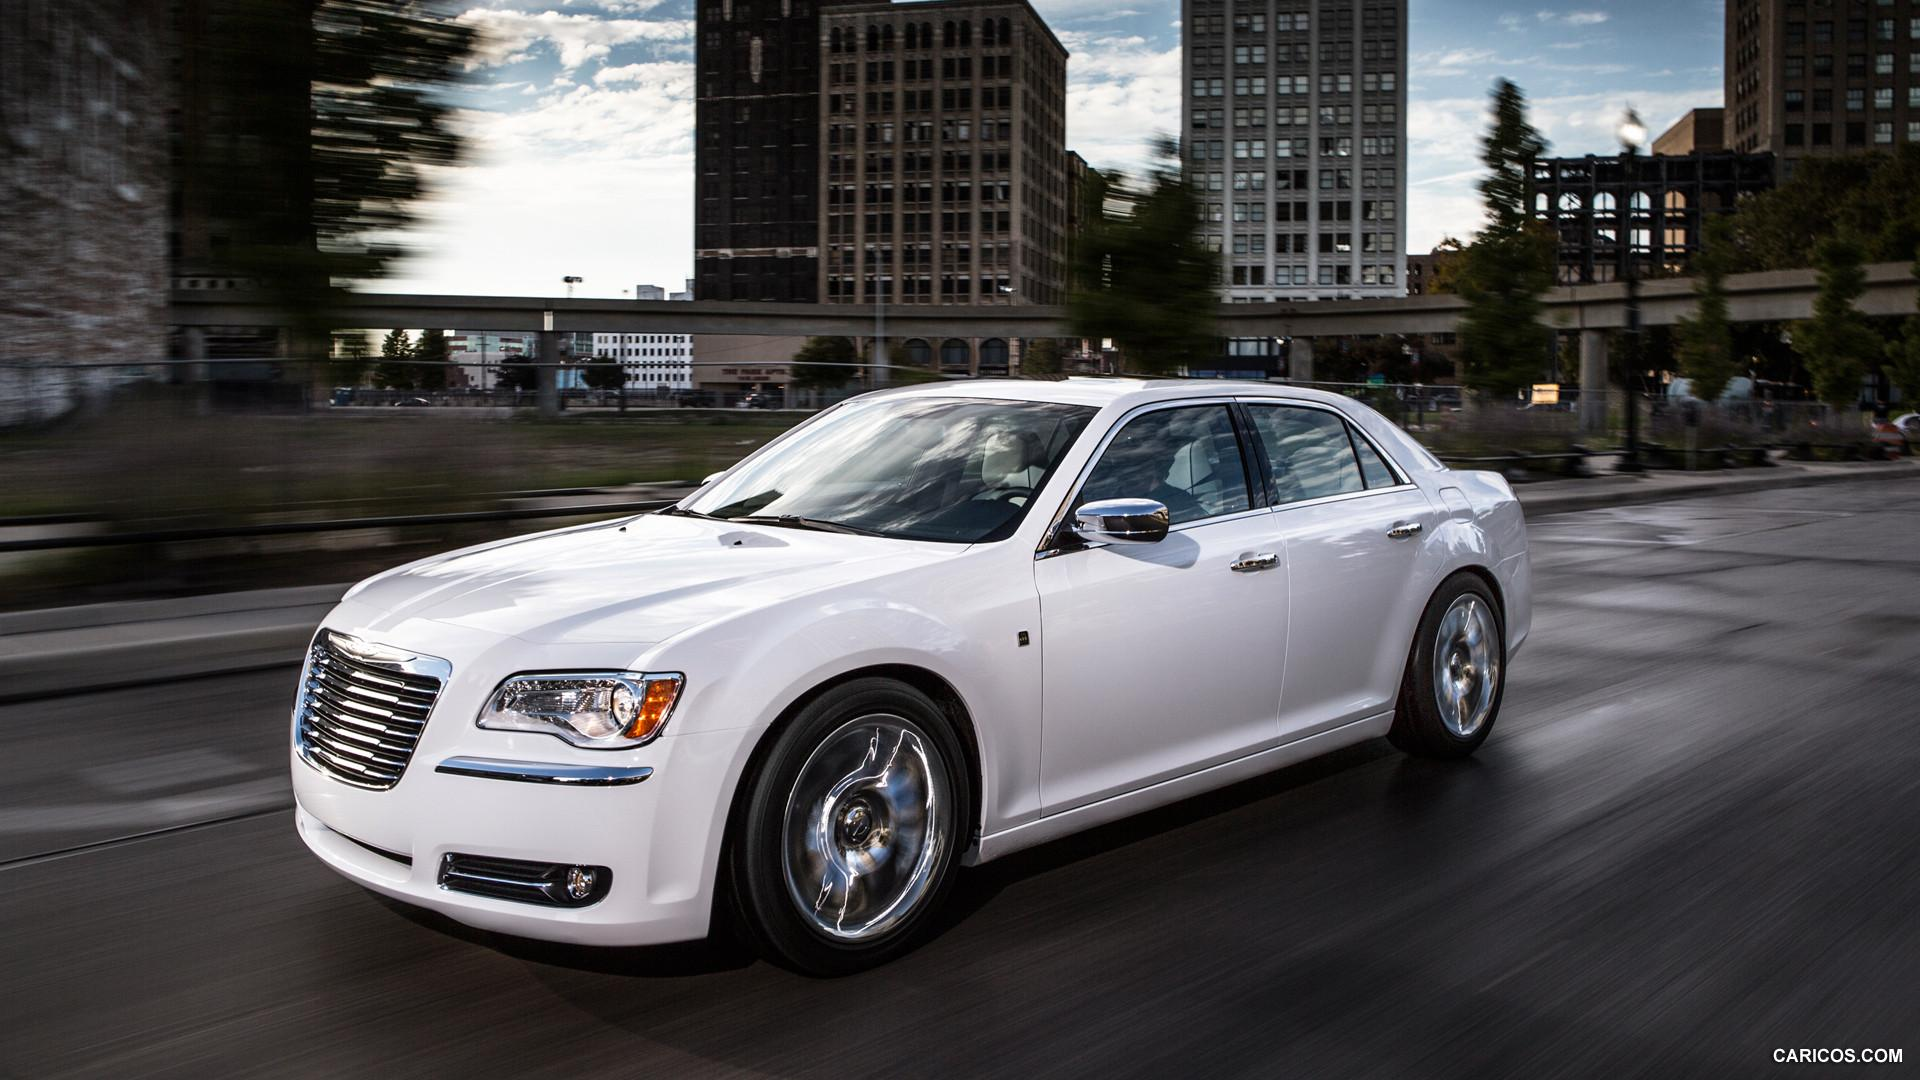 Chrysler 300 Motown Edition picture #132723 | Chrysler photo gallery ...